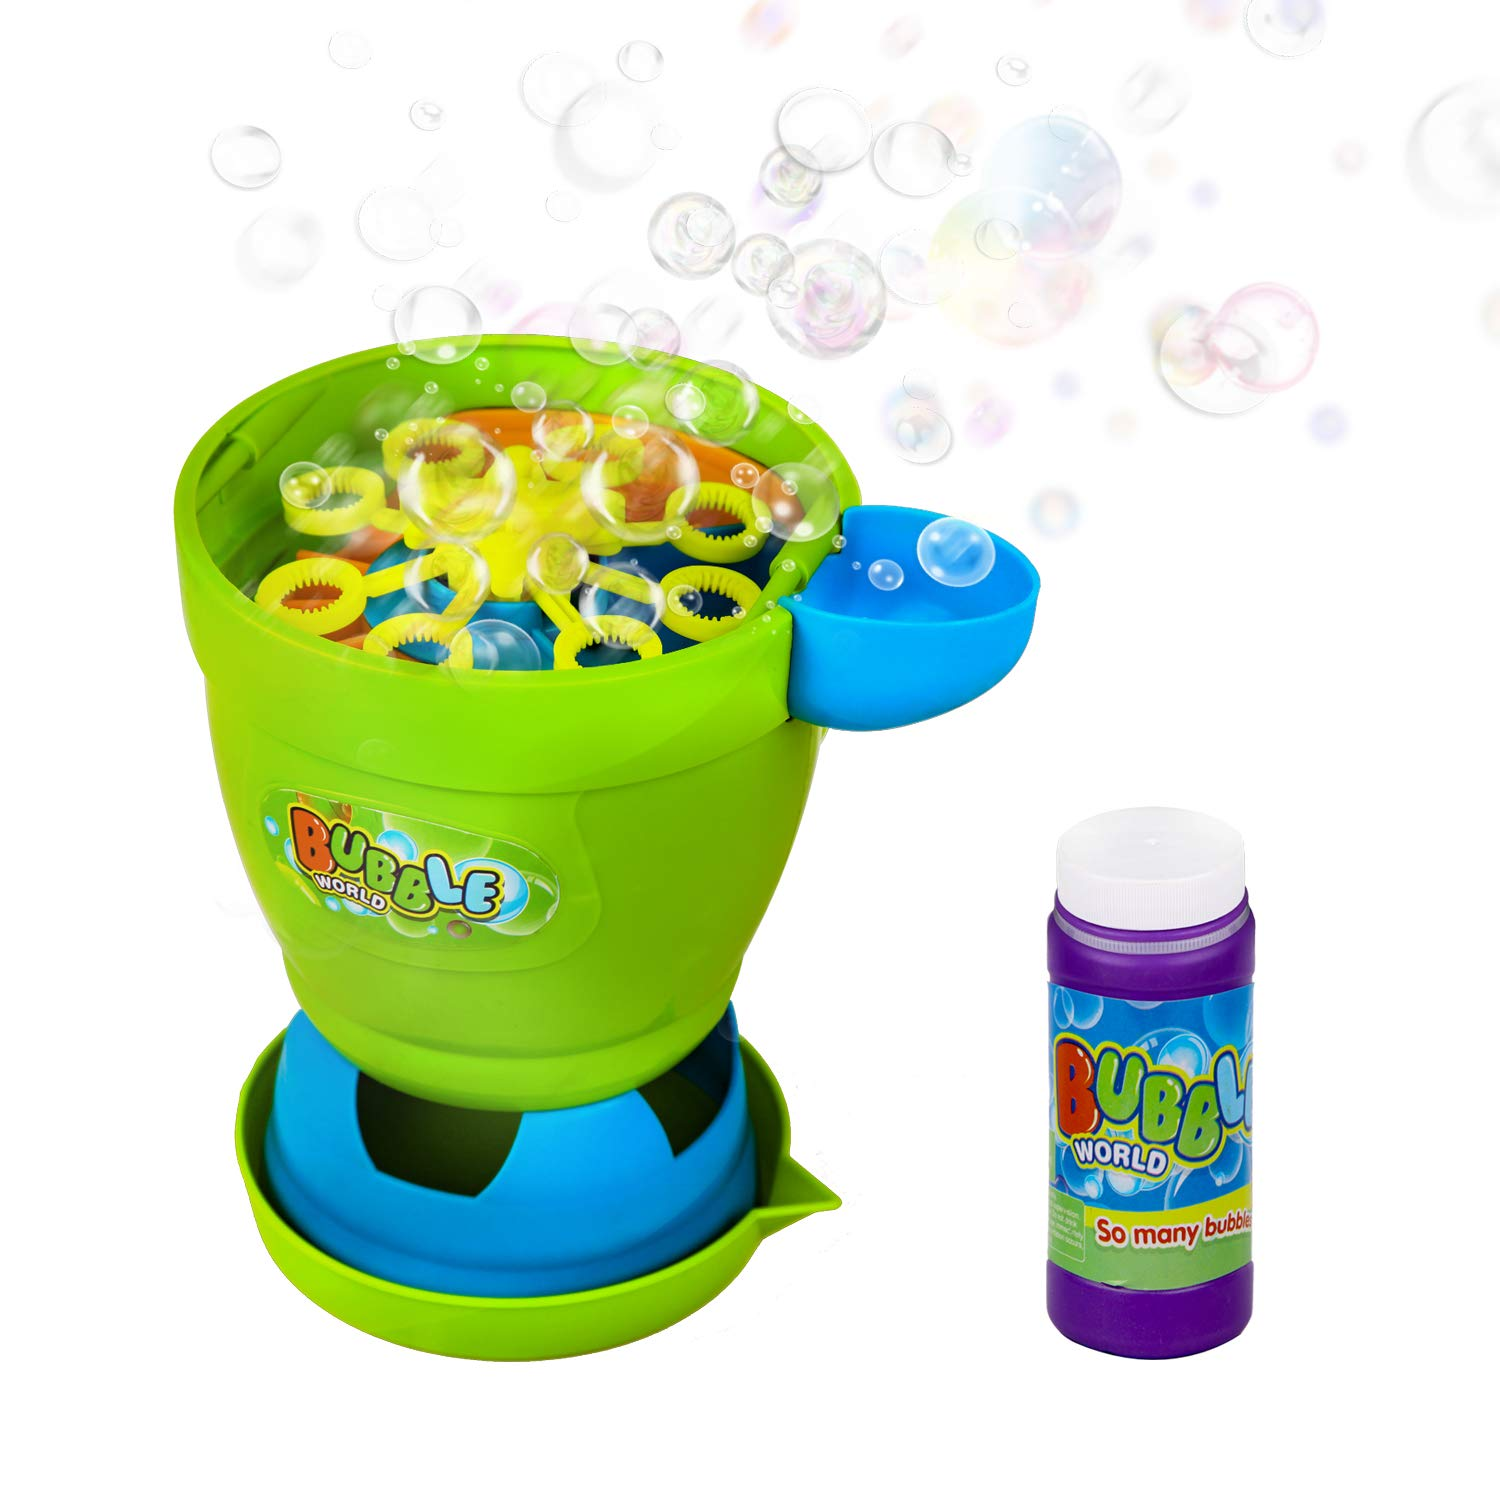 ToyerBee Bubble Machine- Automatic Bubble Maker with Bubble Solution, 1000+ Bubbles per Minute, Outdoors& Party &Wedding, Bubble Blower Toy for 4.5.6.Years Kids &Boys & Girls & Toddlers by ToyerBee (Image #1)